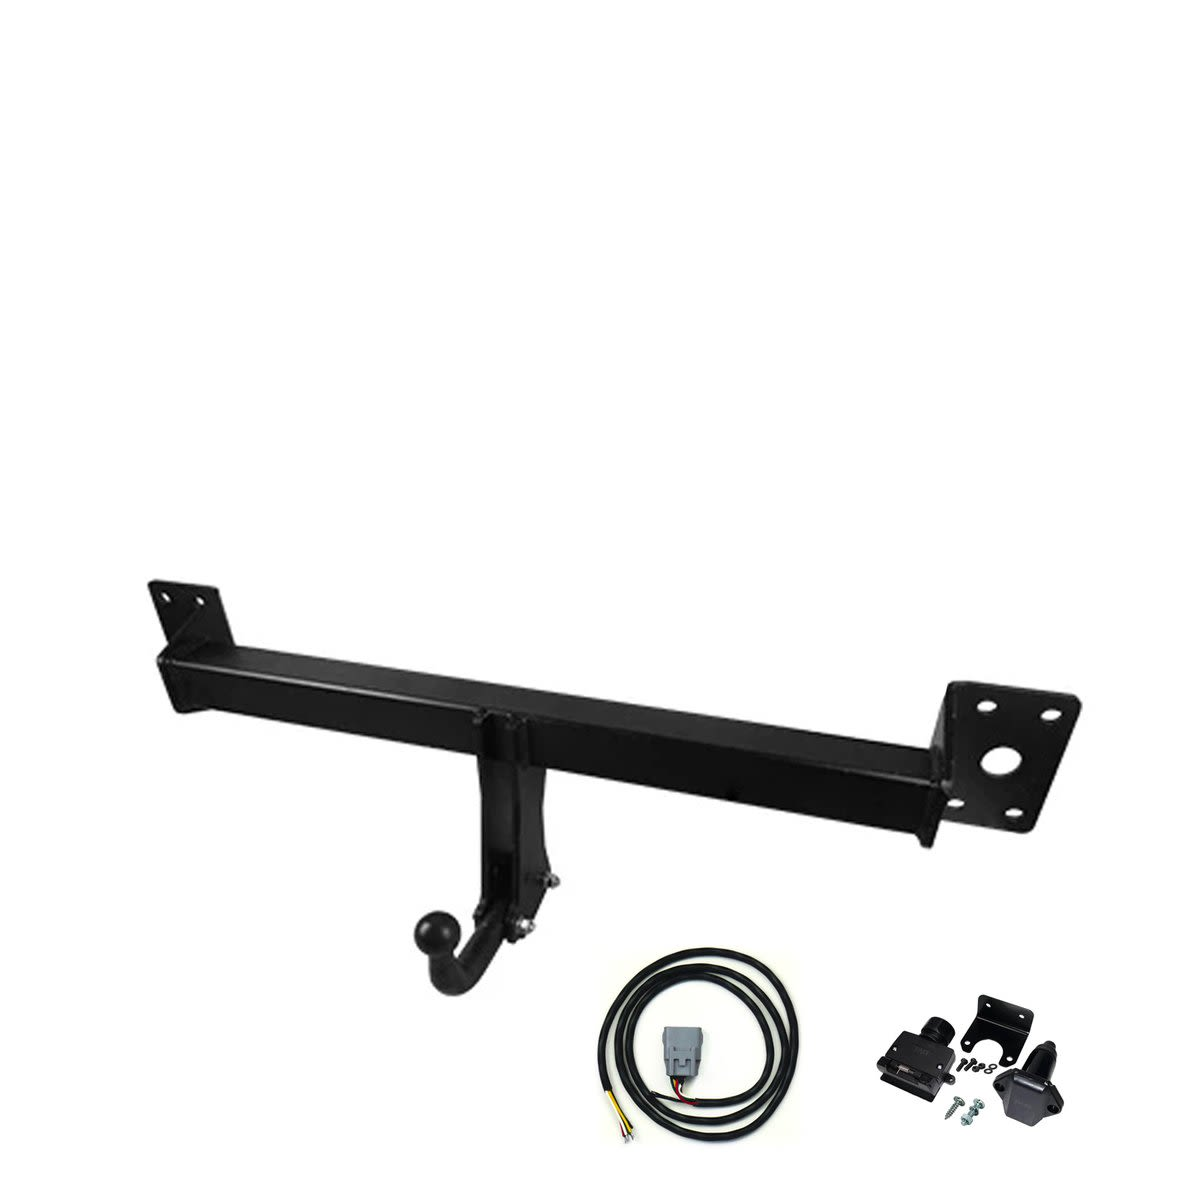 TAG Towbars European Style Tongue to suit BMW 3 (03/1995 - 09/2001)